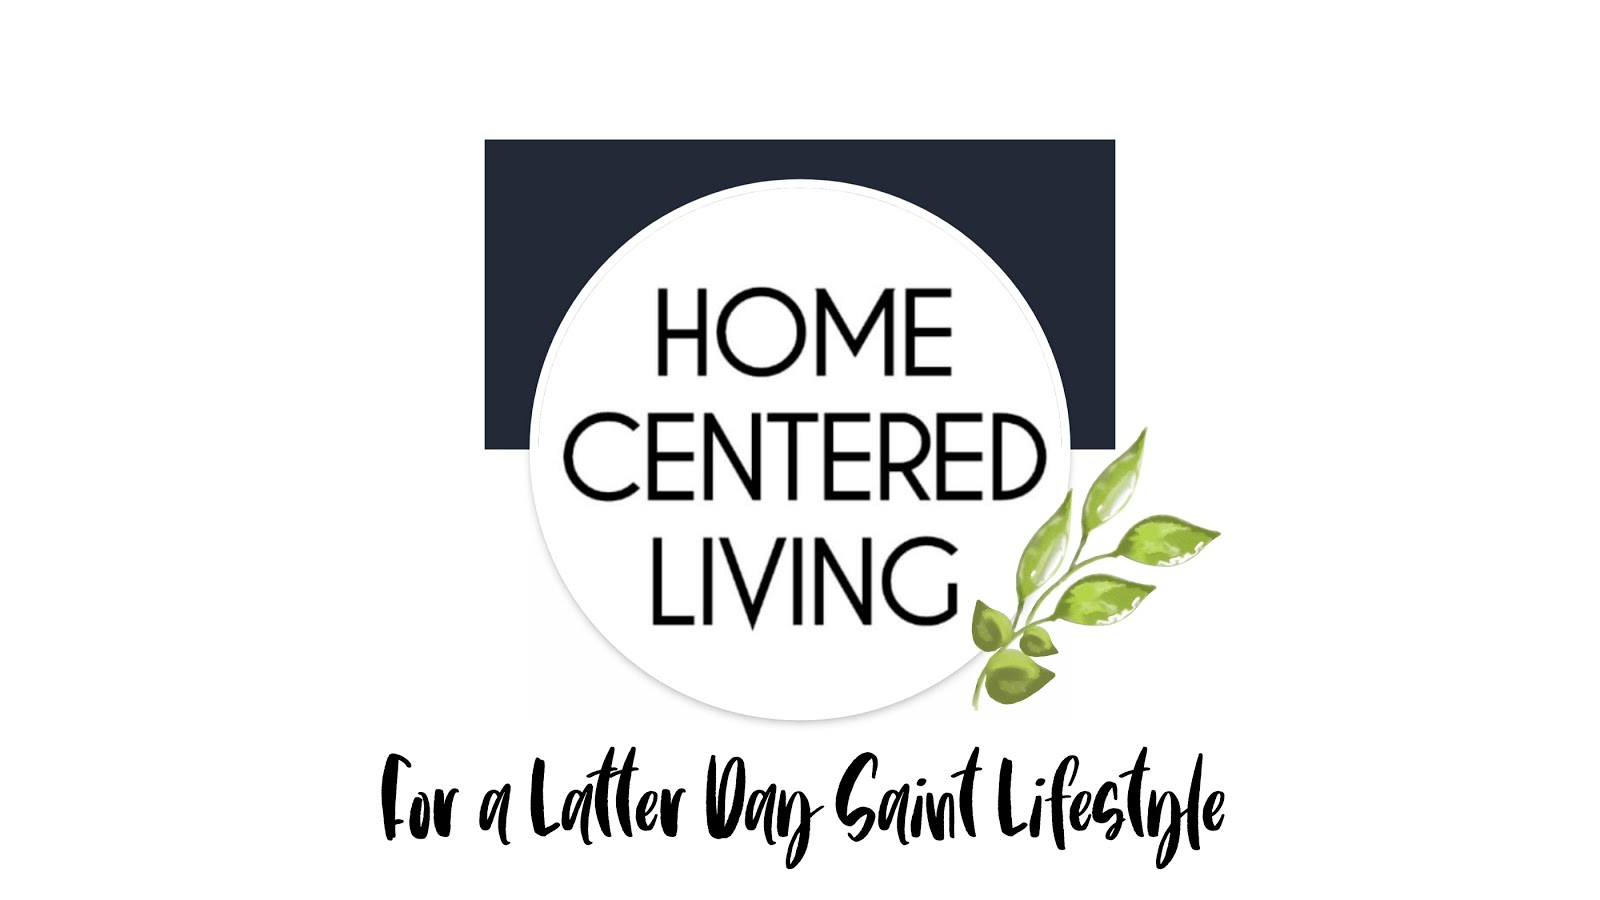 HOME CENTERED LIVING